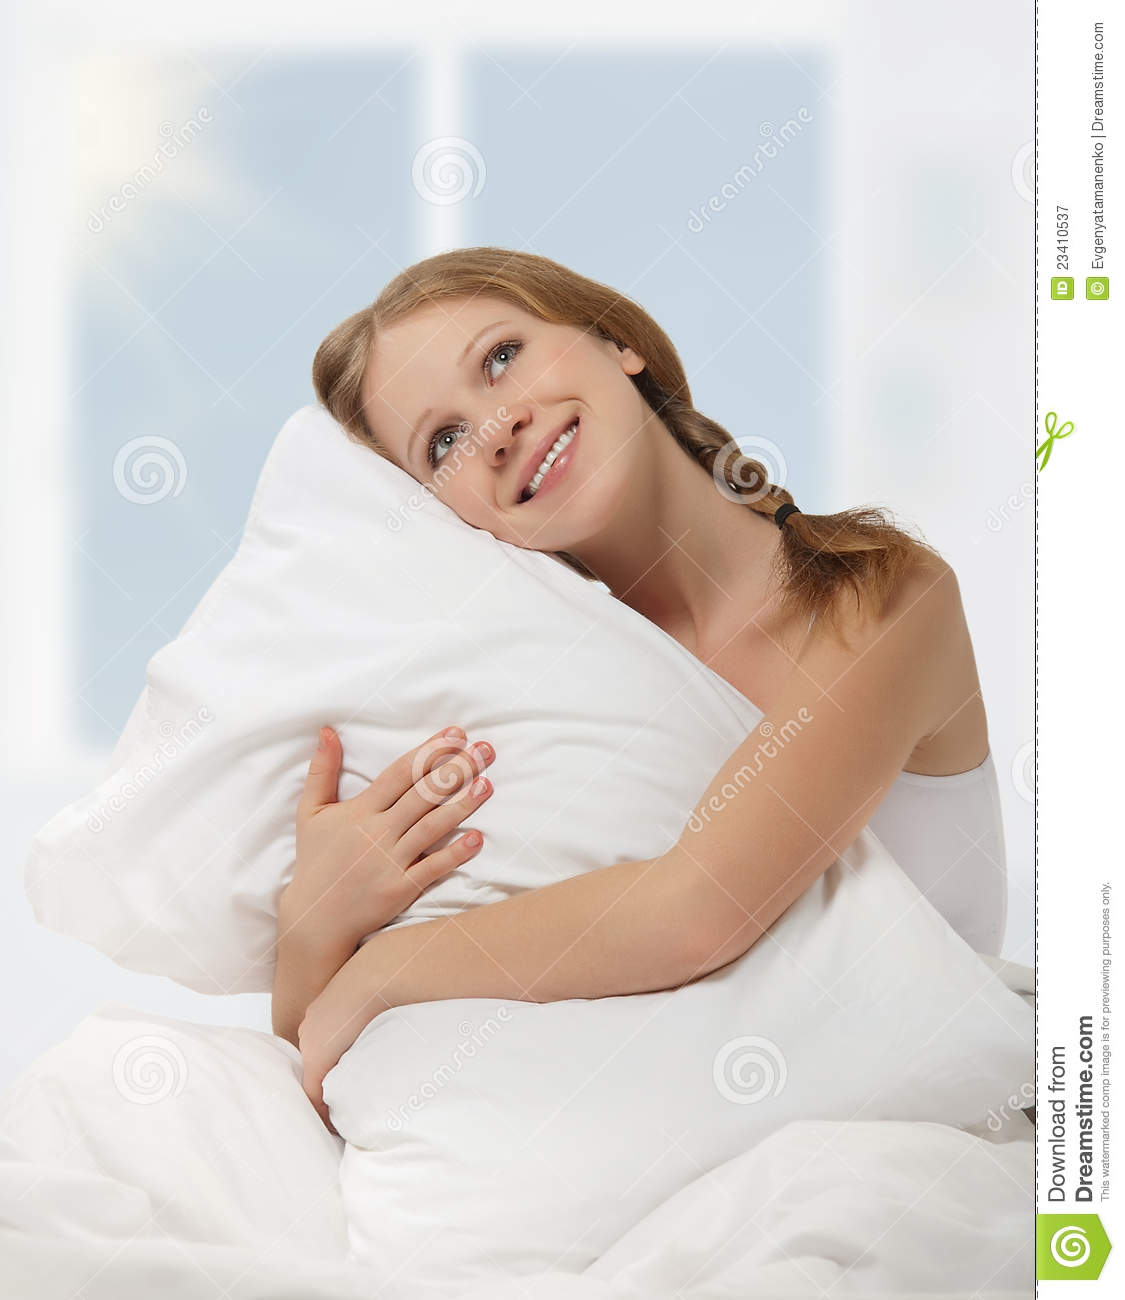 Royalty Free Stock Photography Dreamy Beauty Girl Hugging Pillow Bed Image23410537 on 3 Bedroom House Plans Free